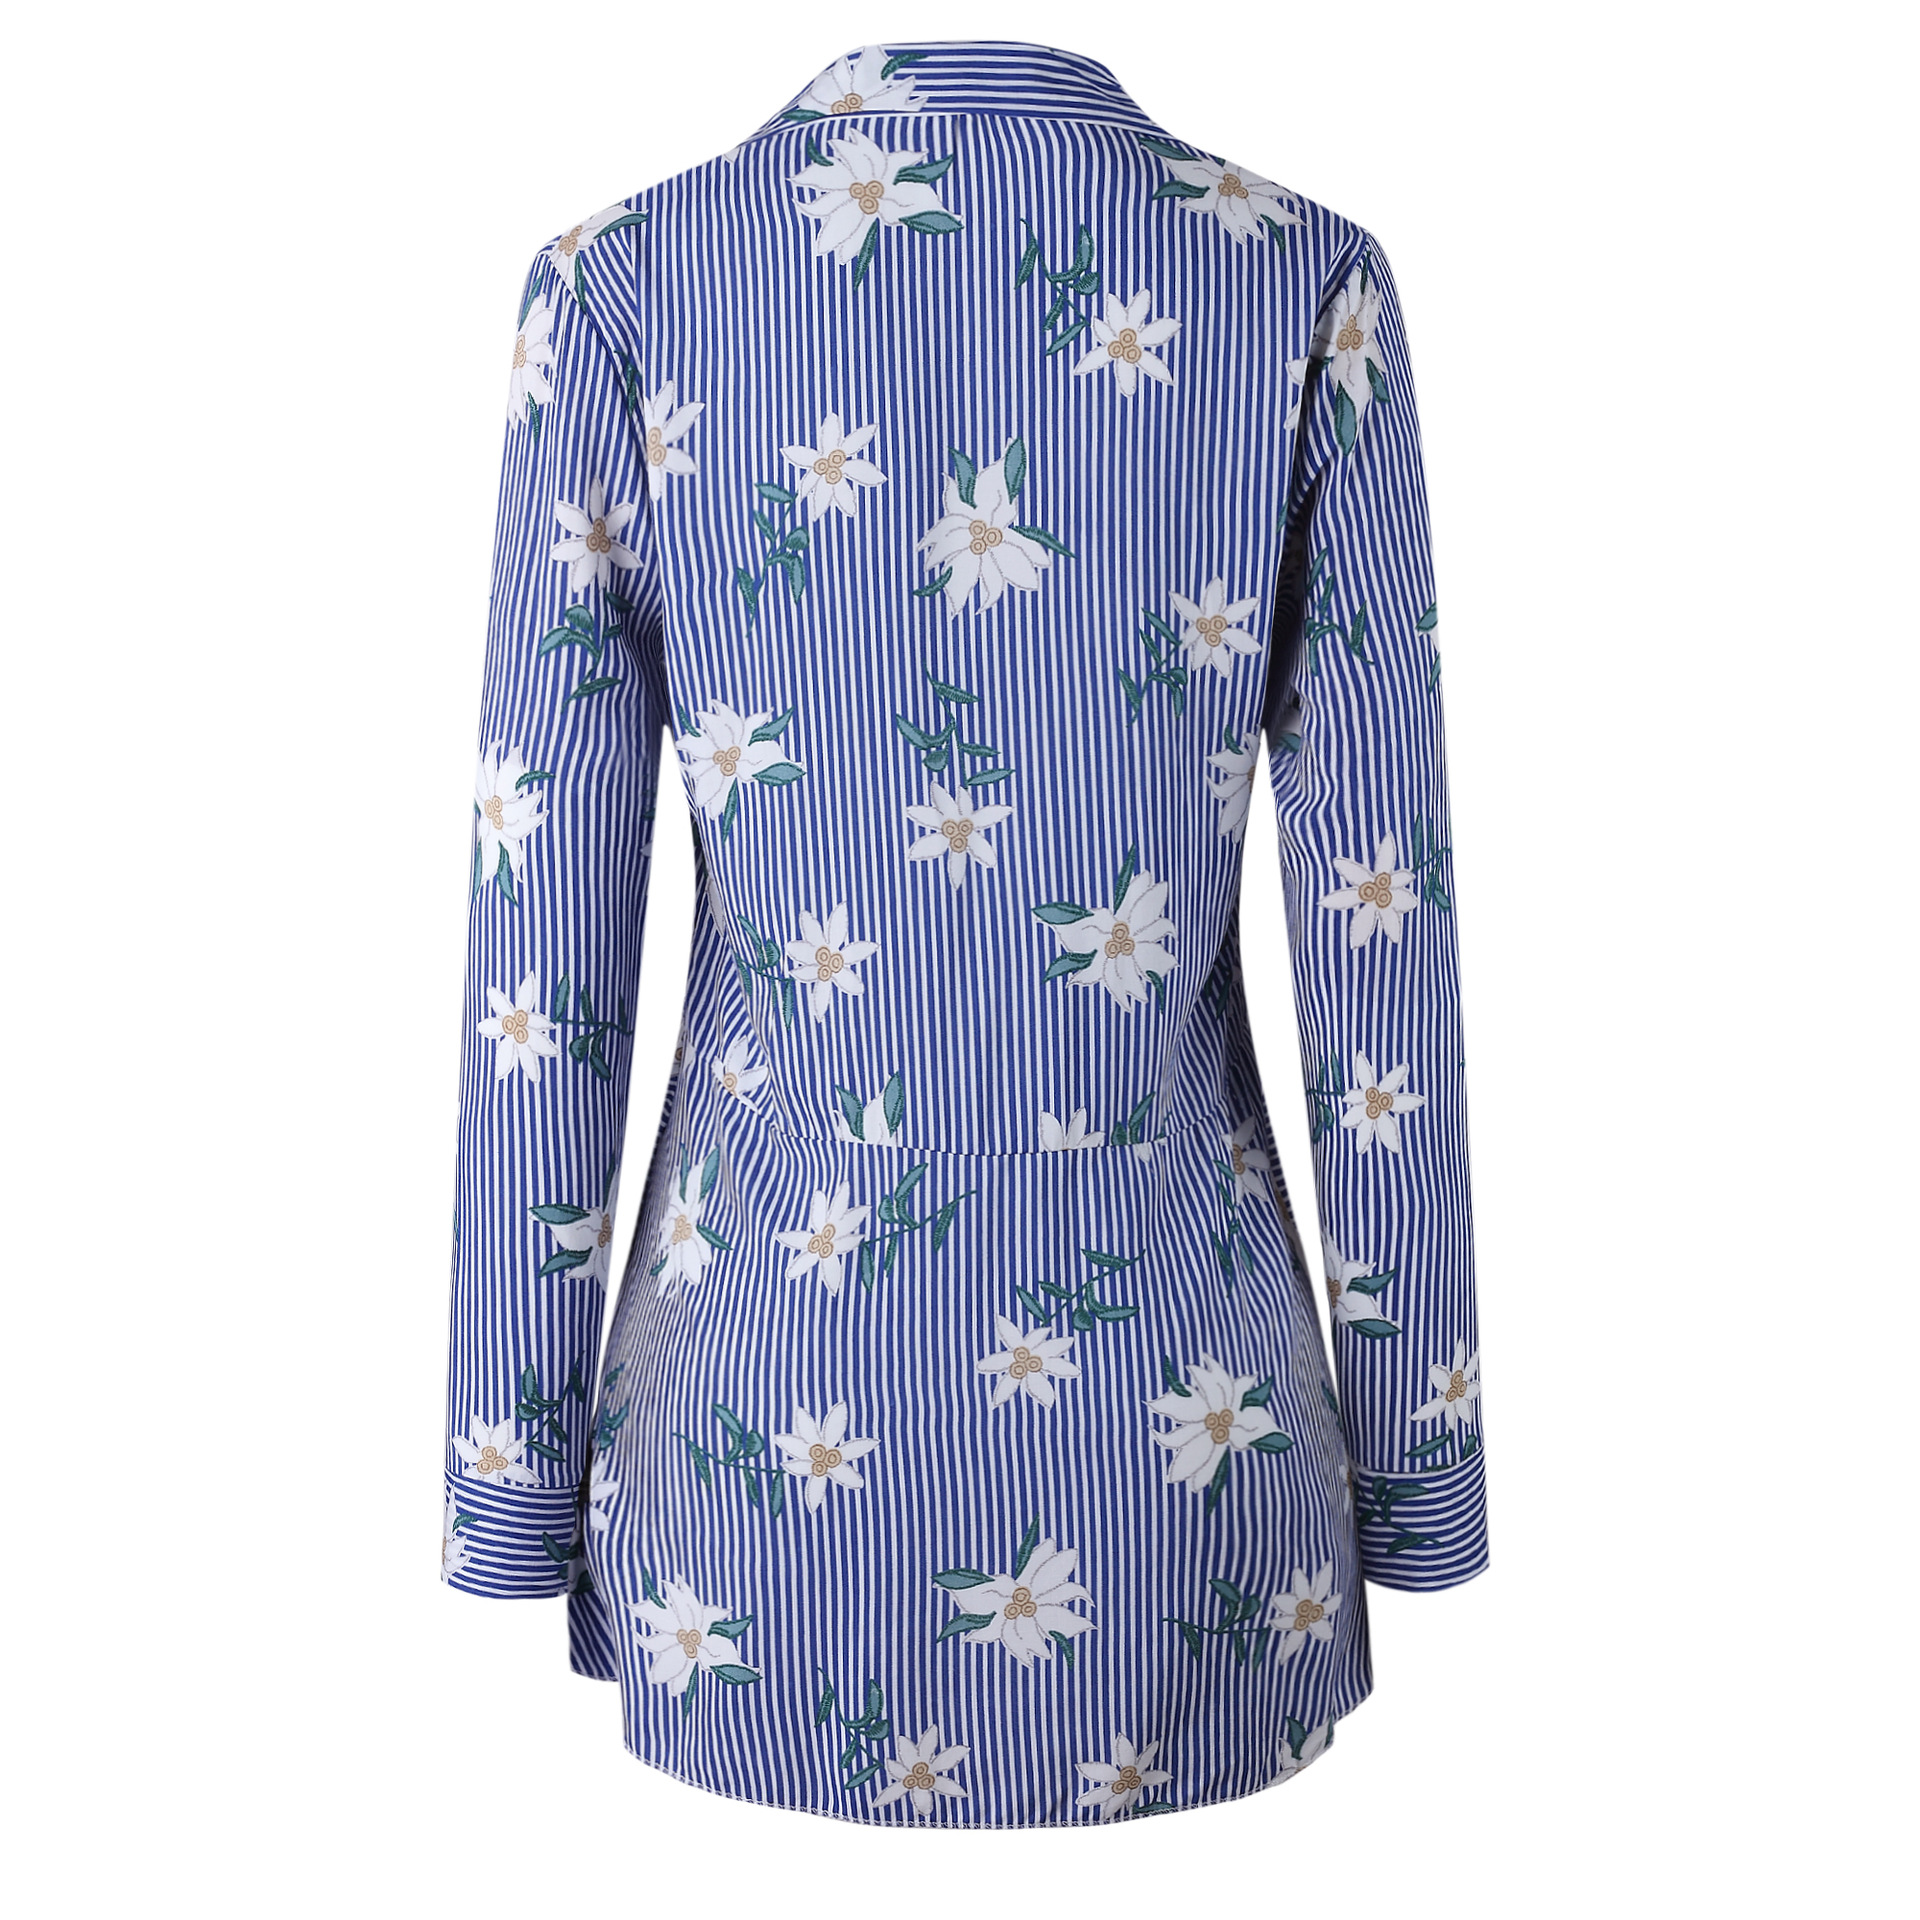 spring blouses turn-down collar female shirt women top plus size harajuku floral tops long sleeve woman blouse new fashion